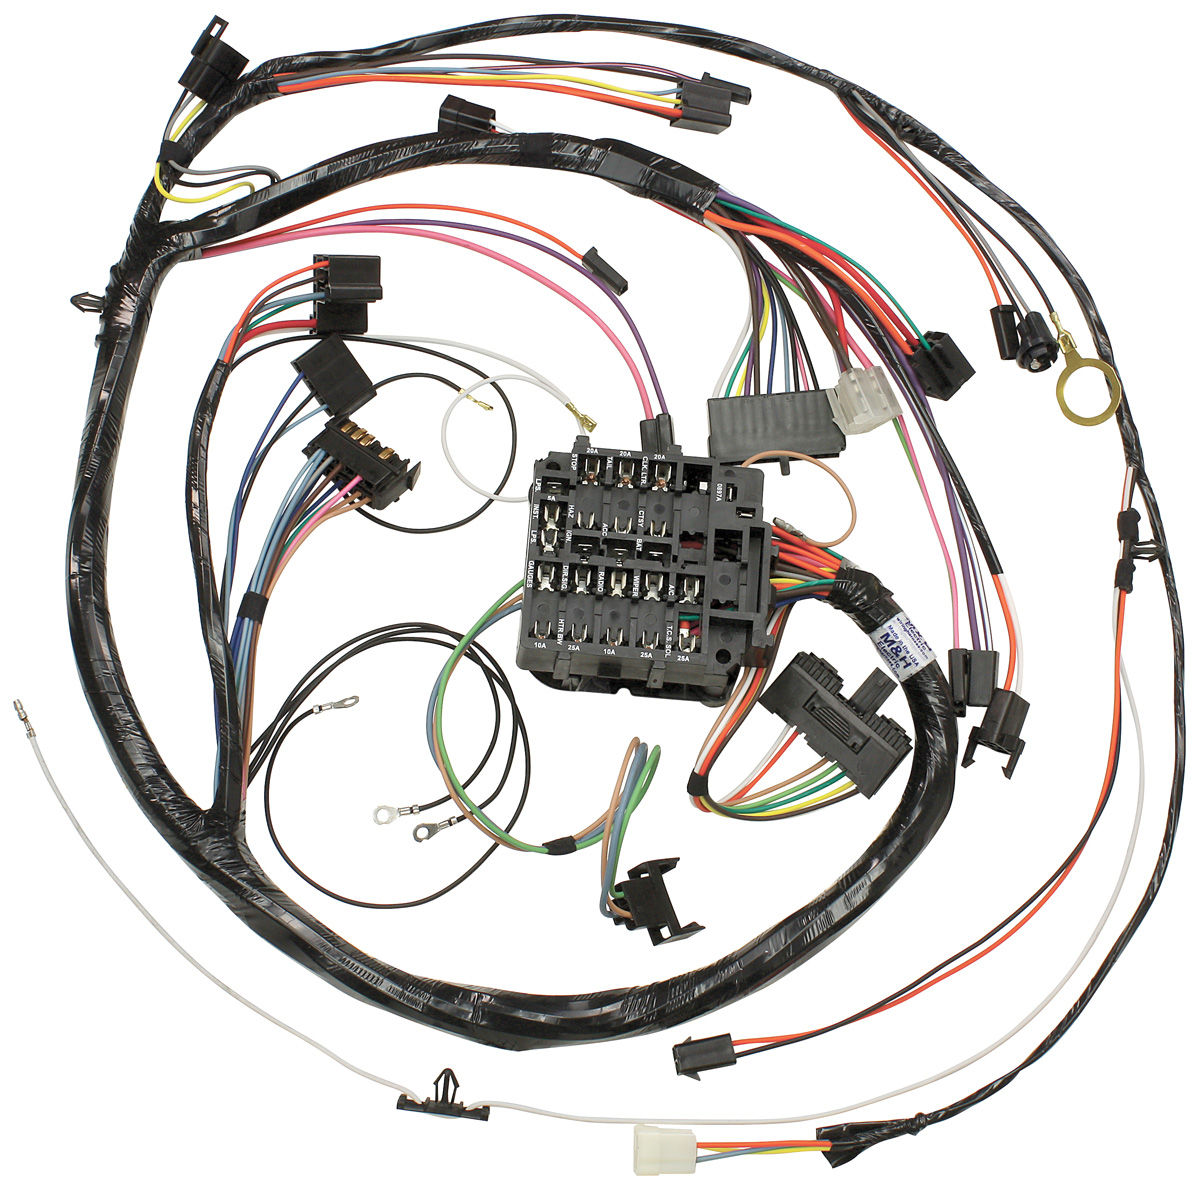 1970 chevelle wiring diagram wiring solutions 70 chevelle wiring diagram 1970 chevelle wiring harness diagram